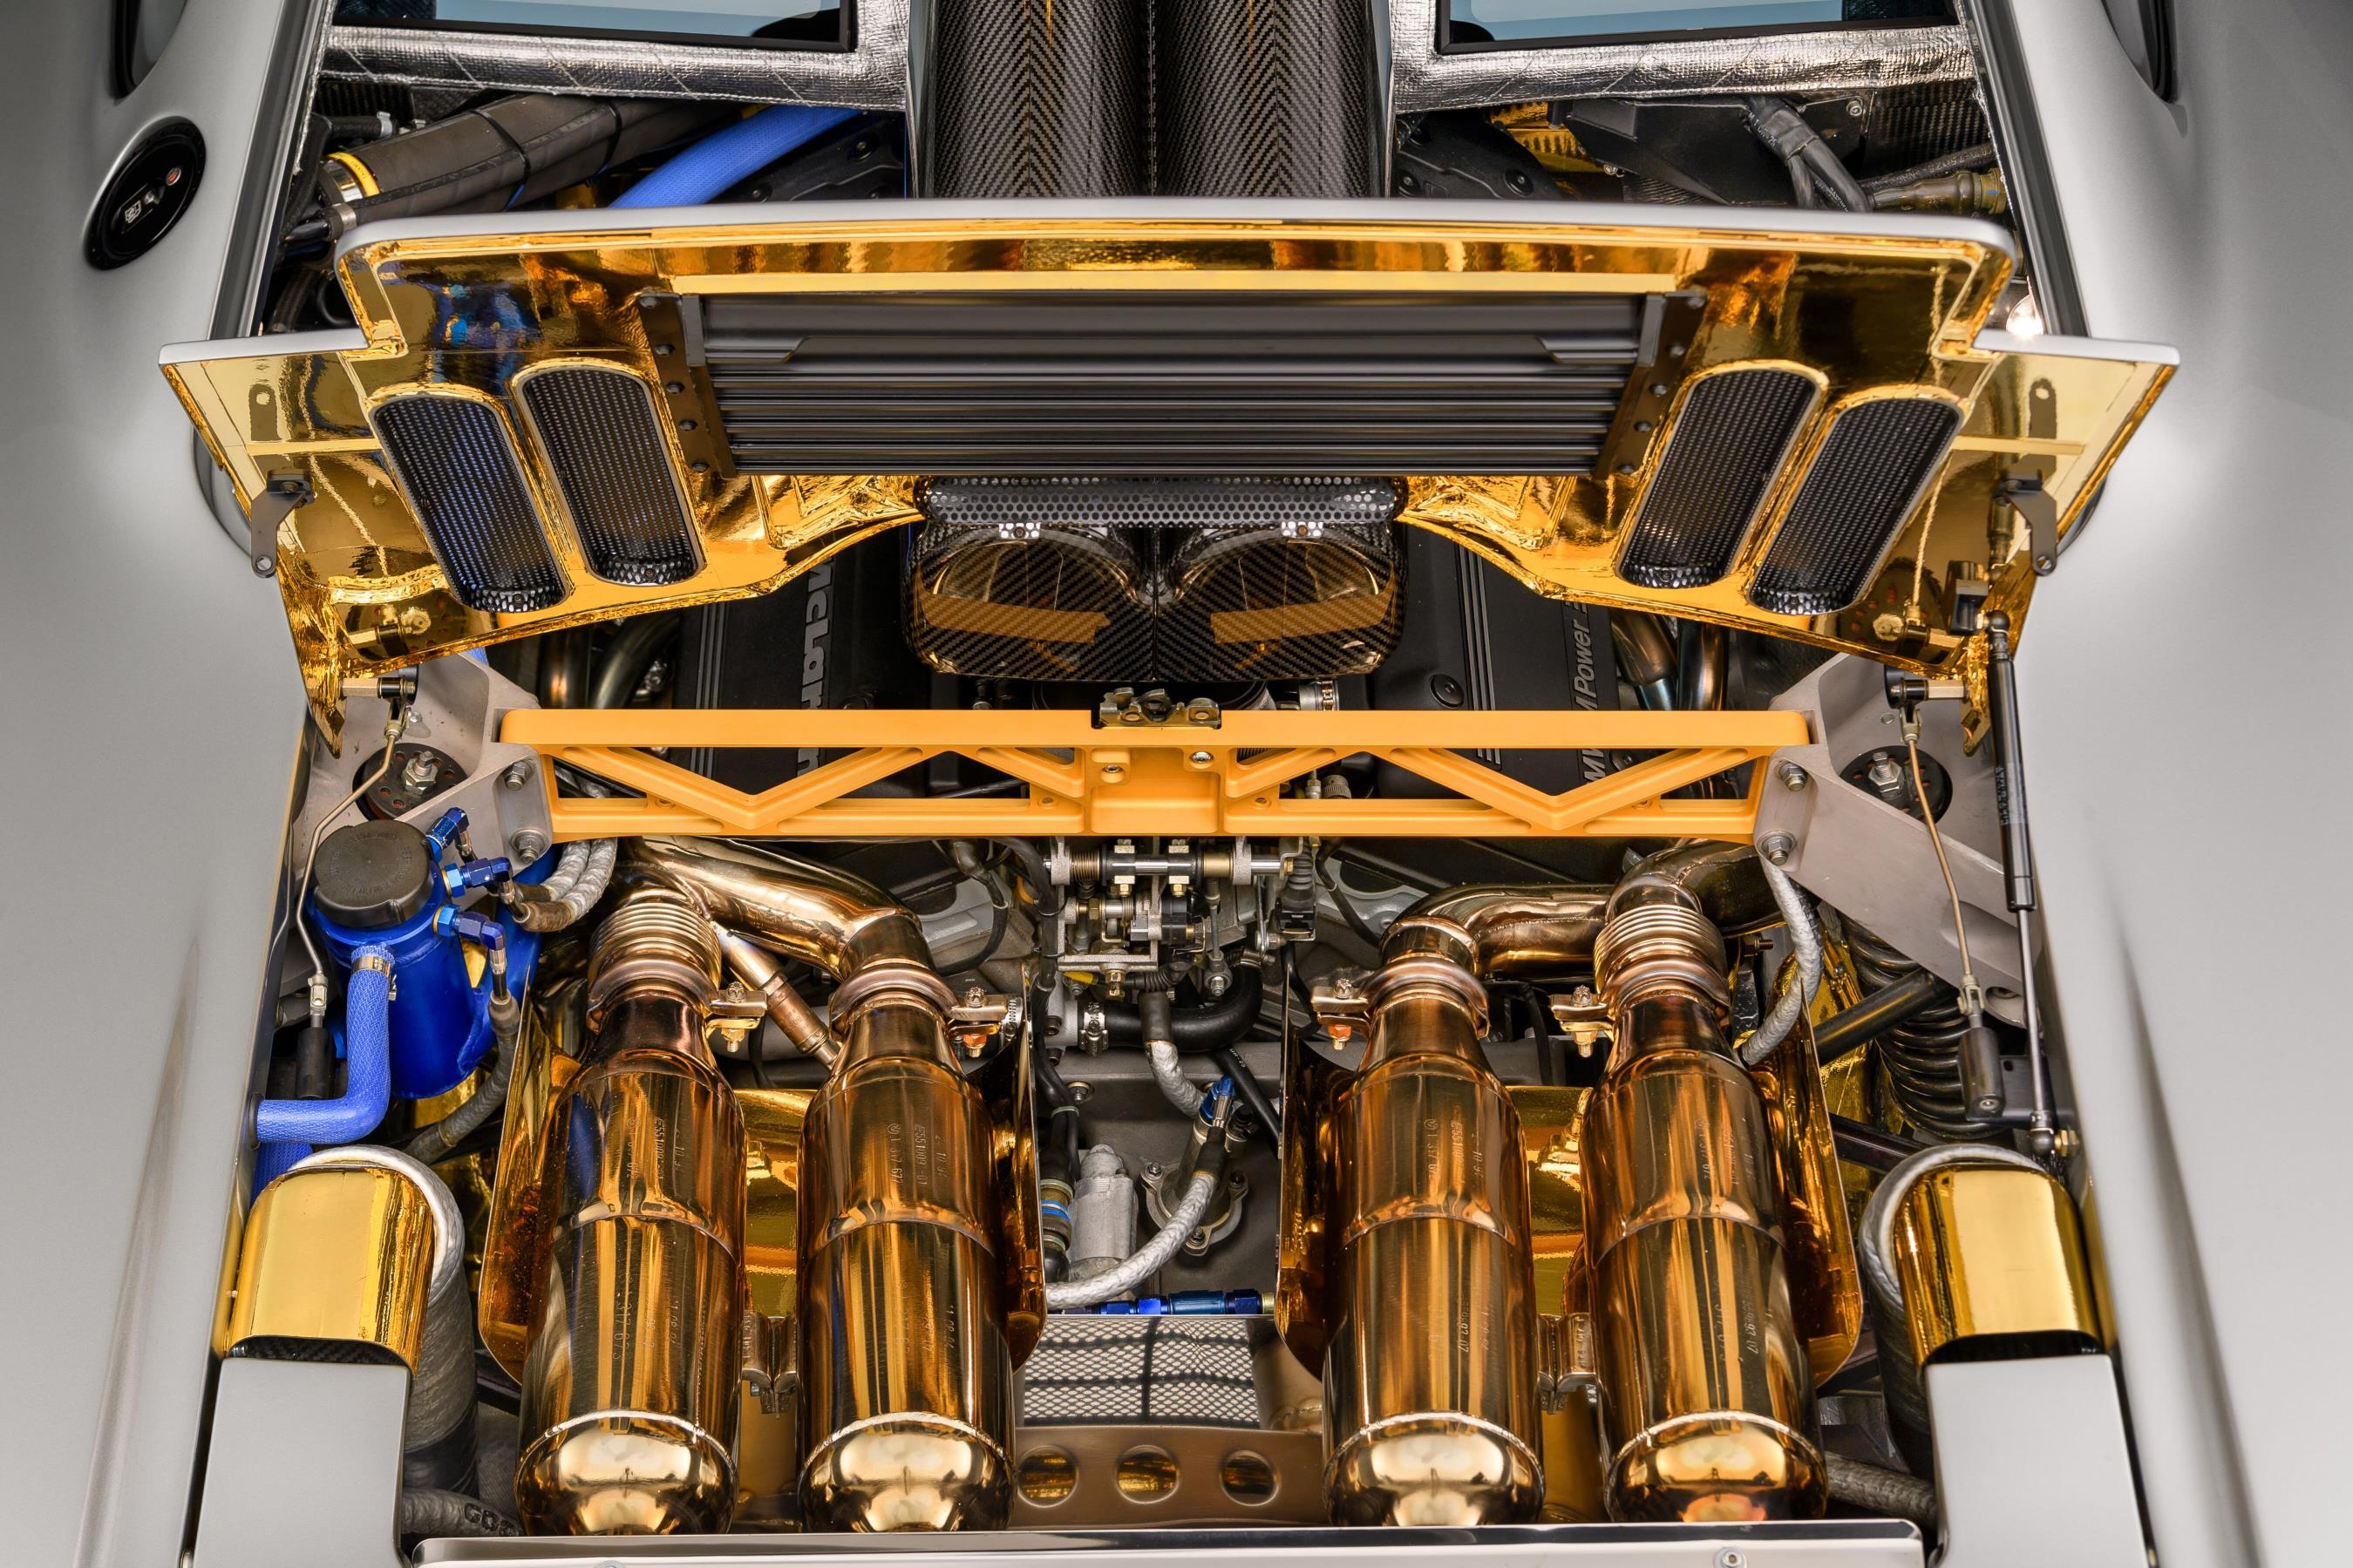 McLaren F1 Gold Engine